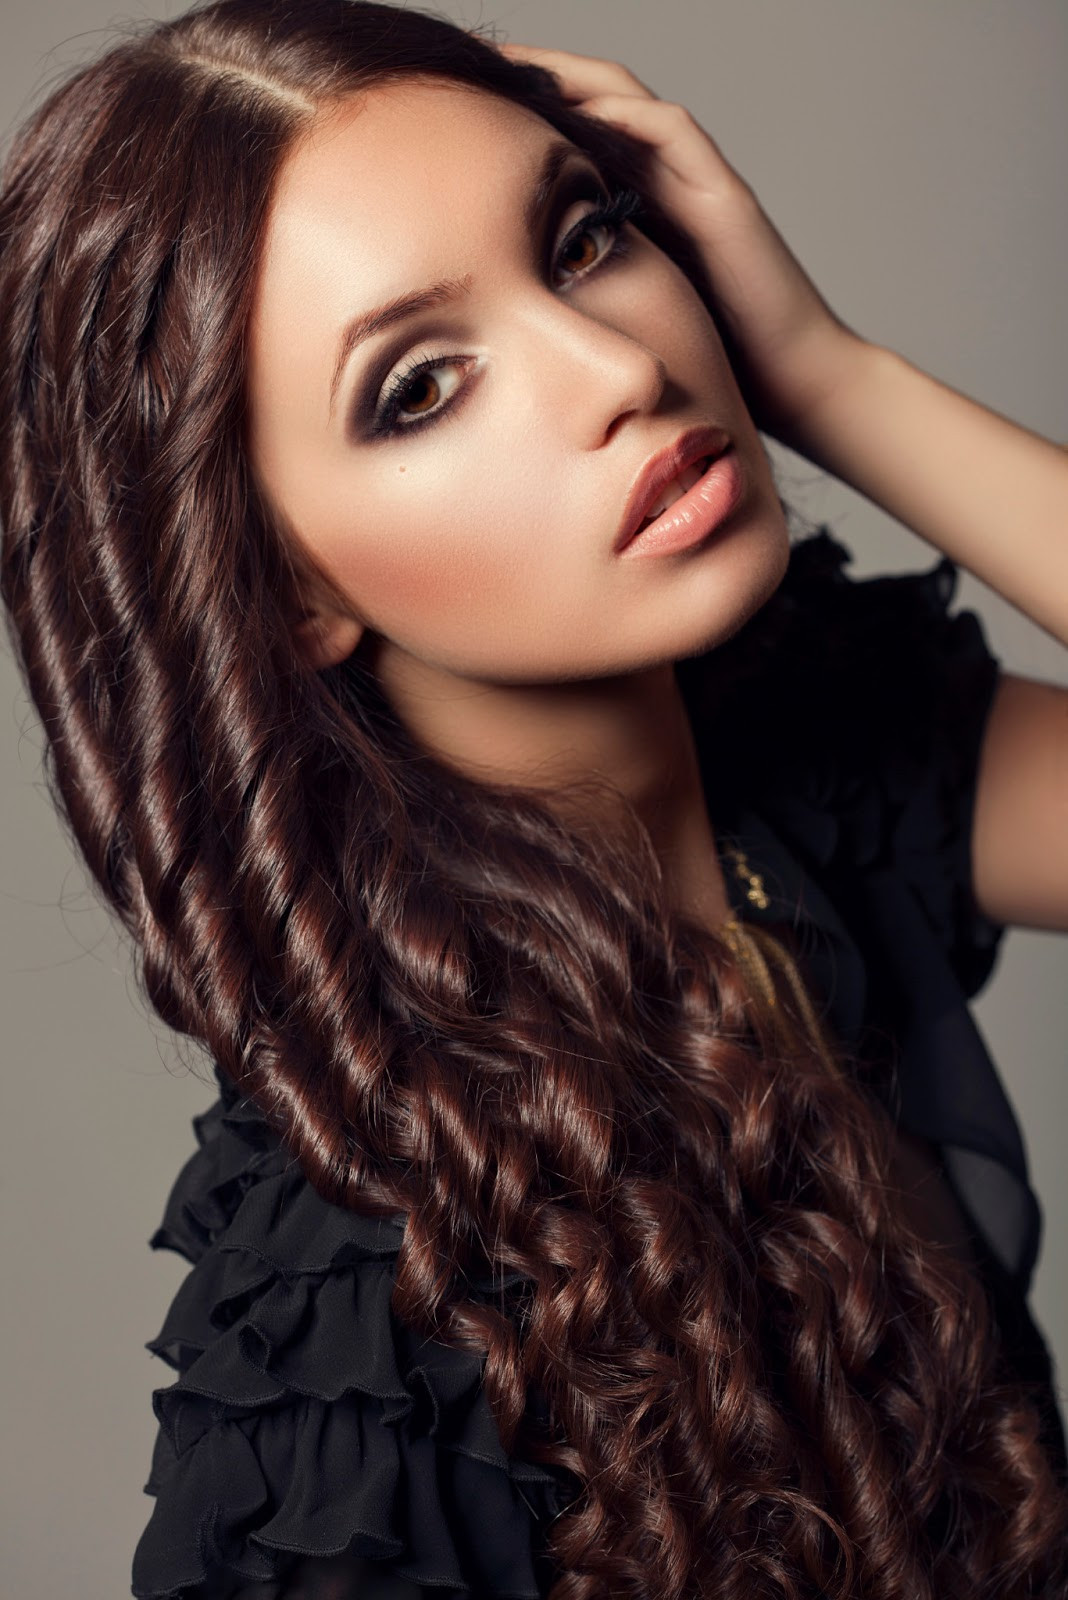 Womens Long Hairstyles  20 Long Hairstyles for Women with Casual and Formal Style